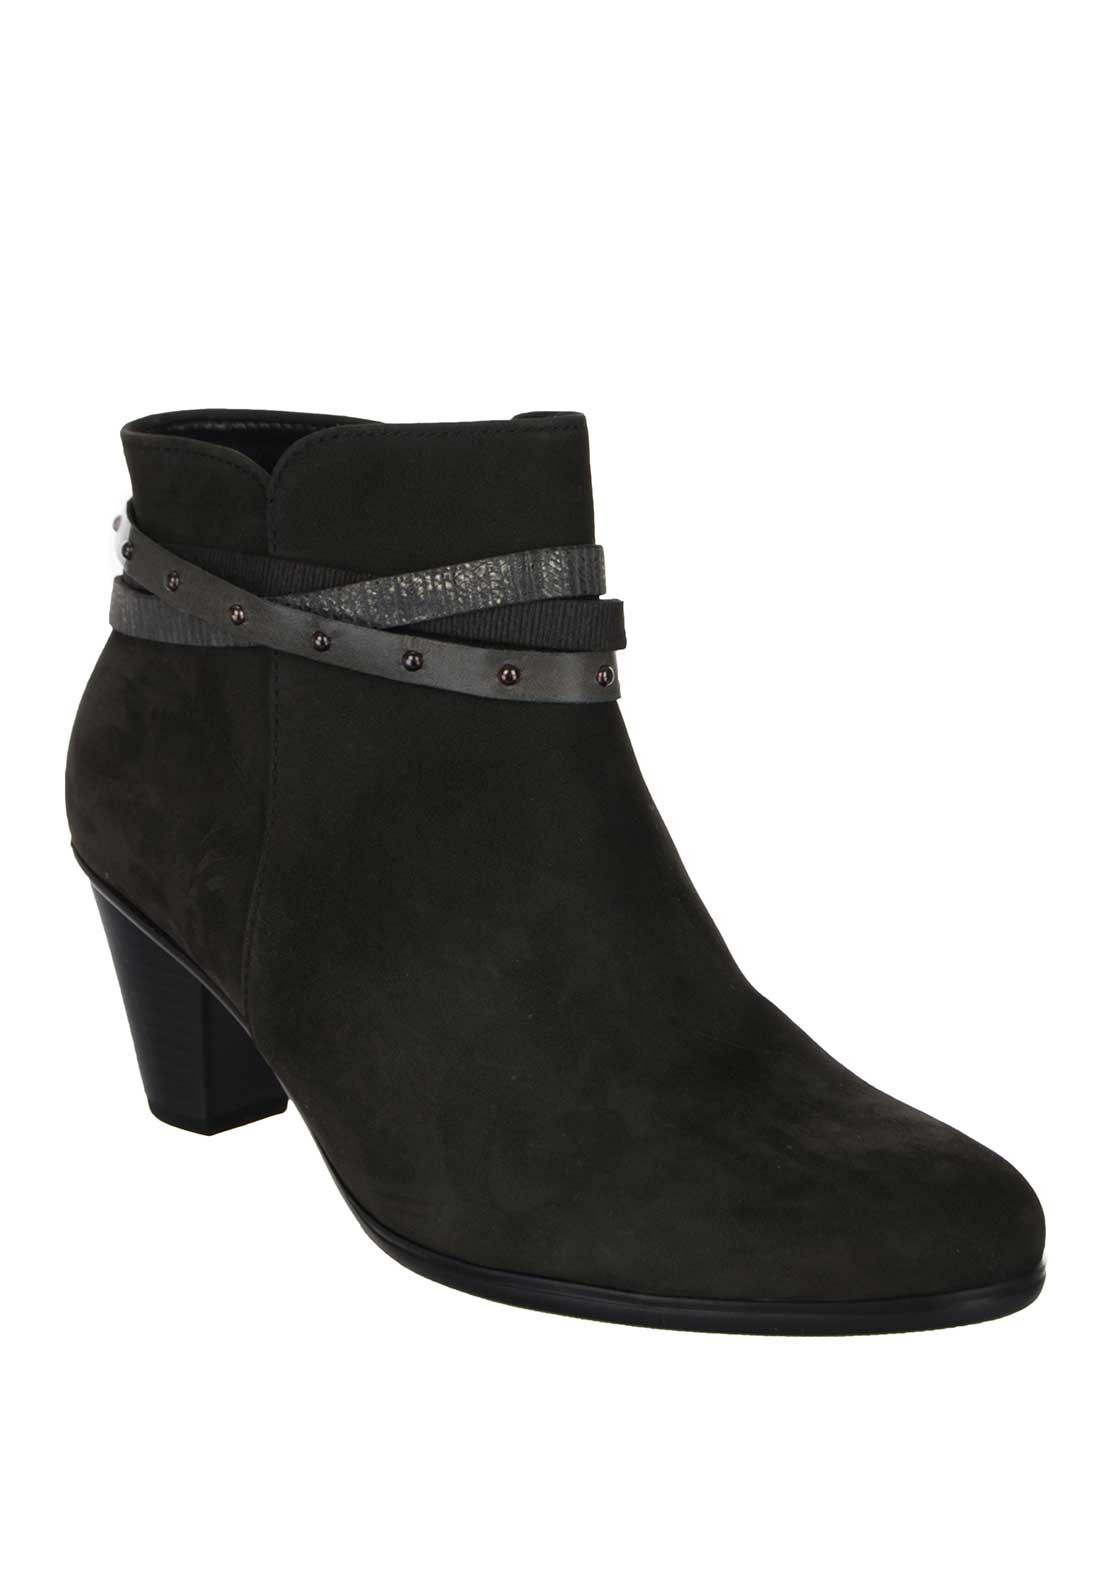 Gabor Solero Womens Ankle Boot, Charcoal Grey